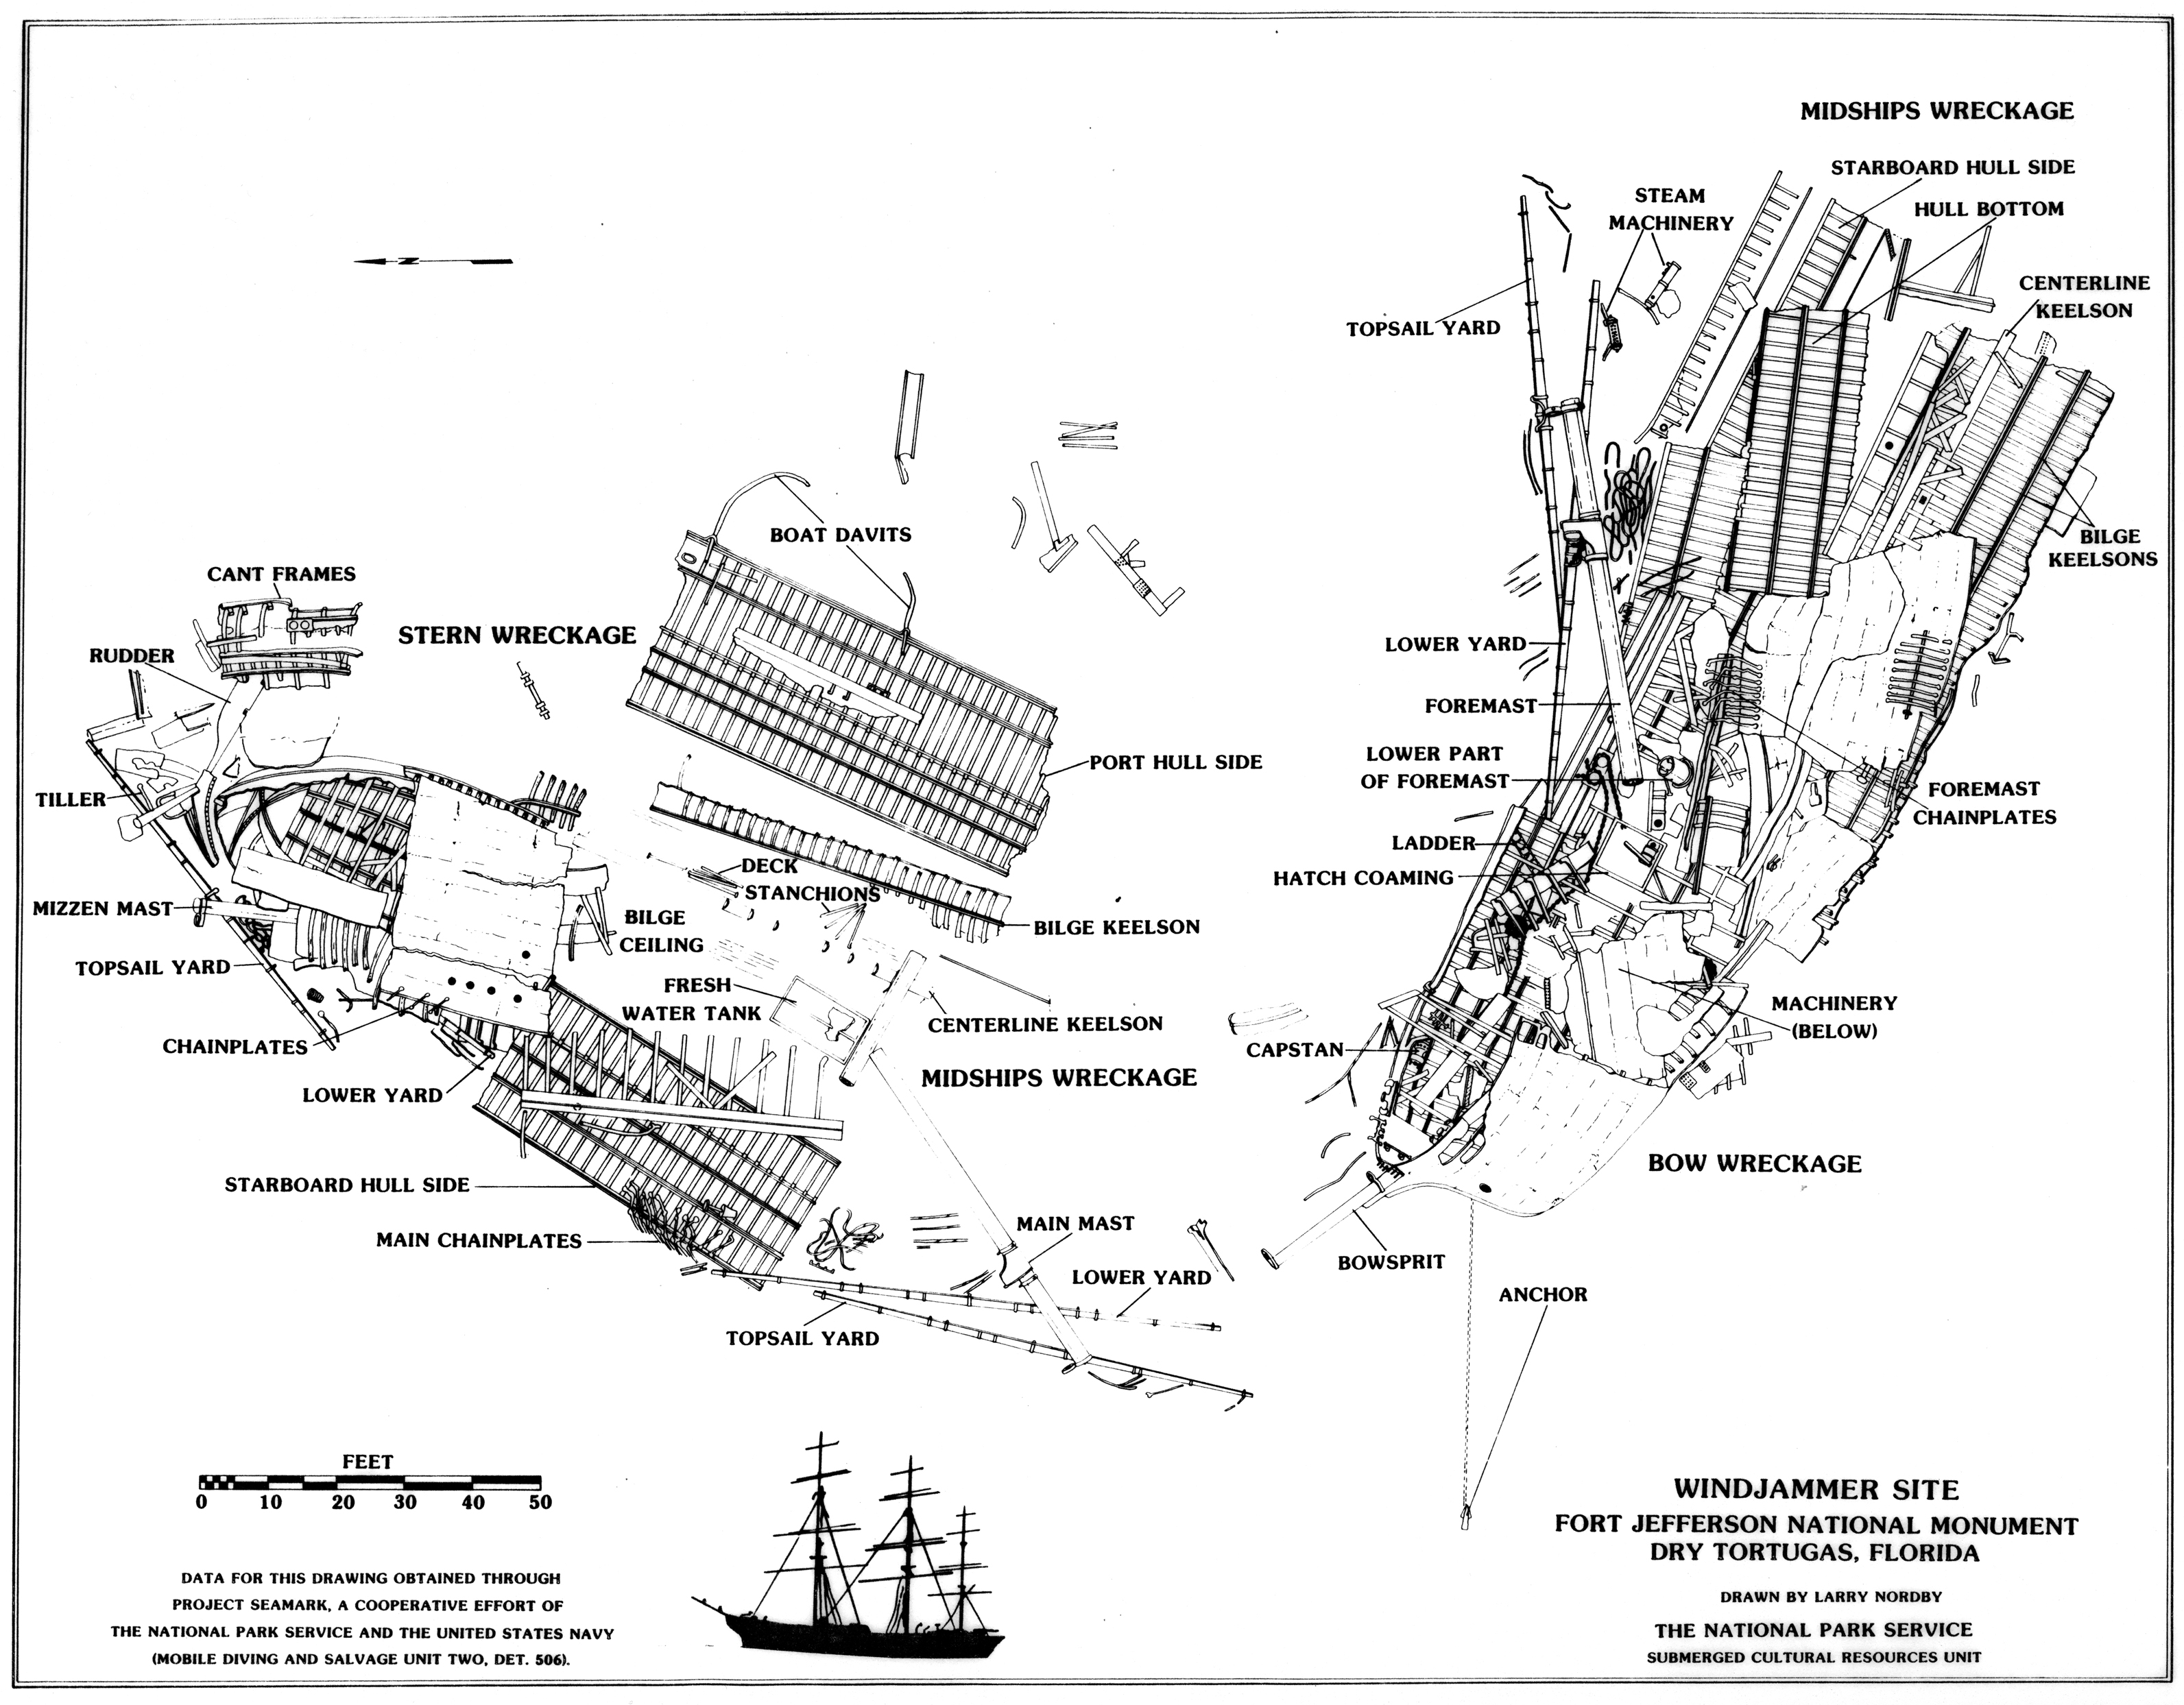 The Windjammer Wreck